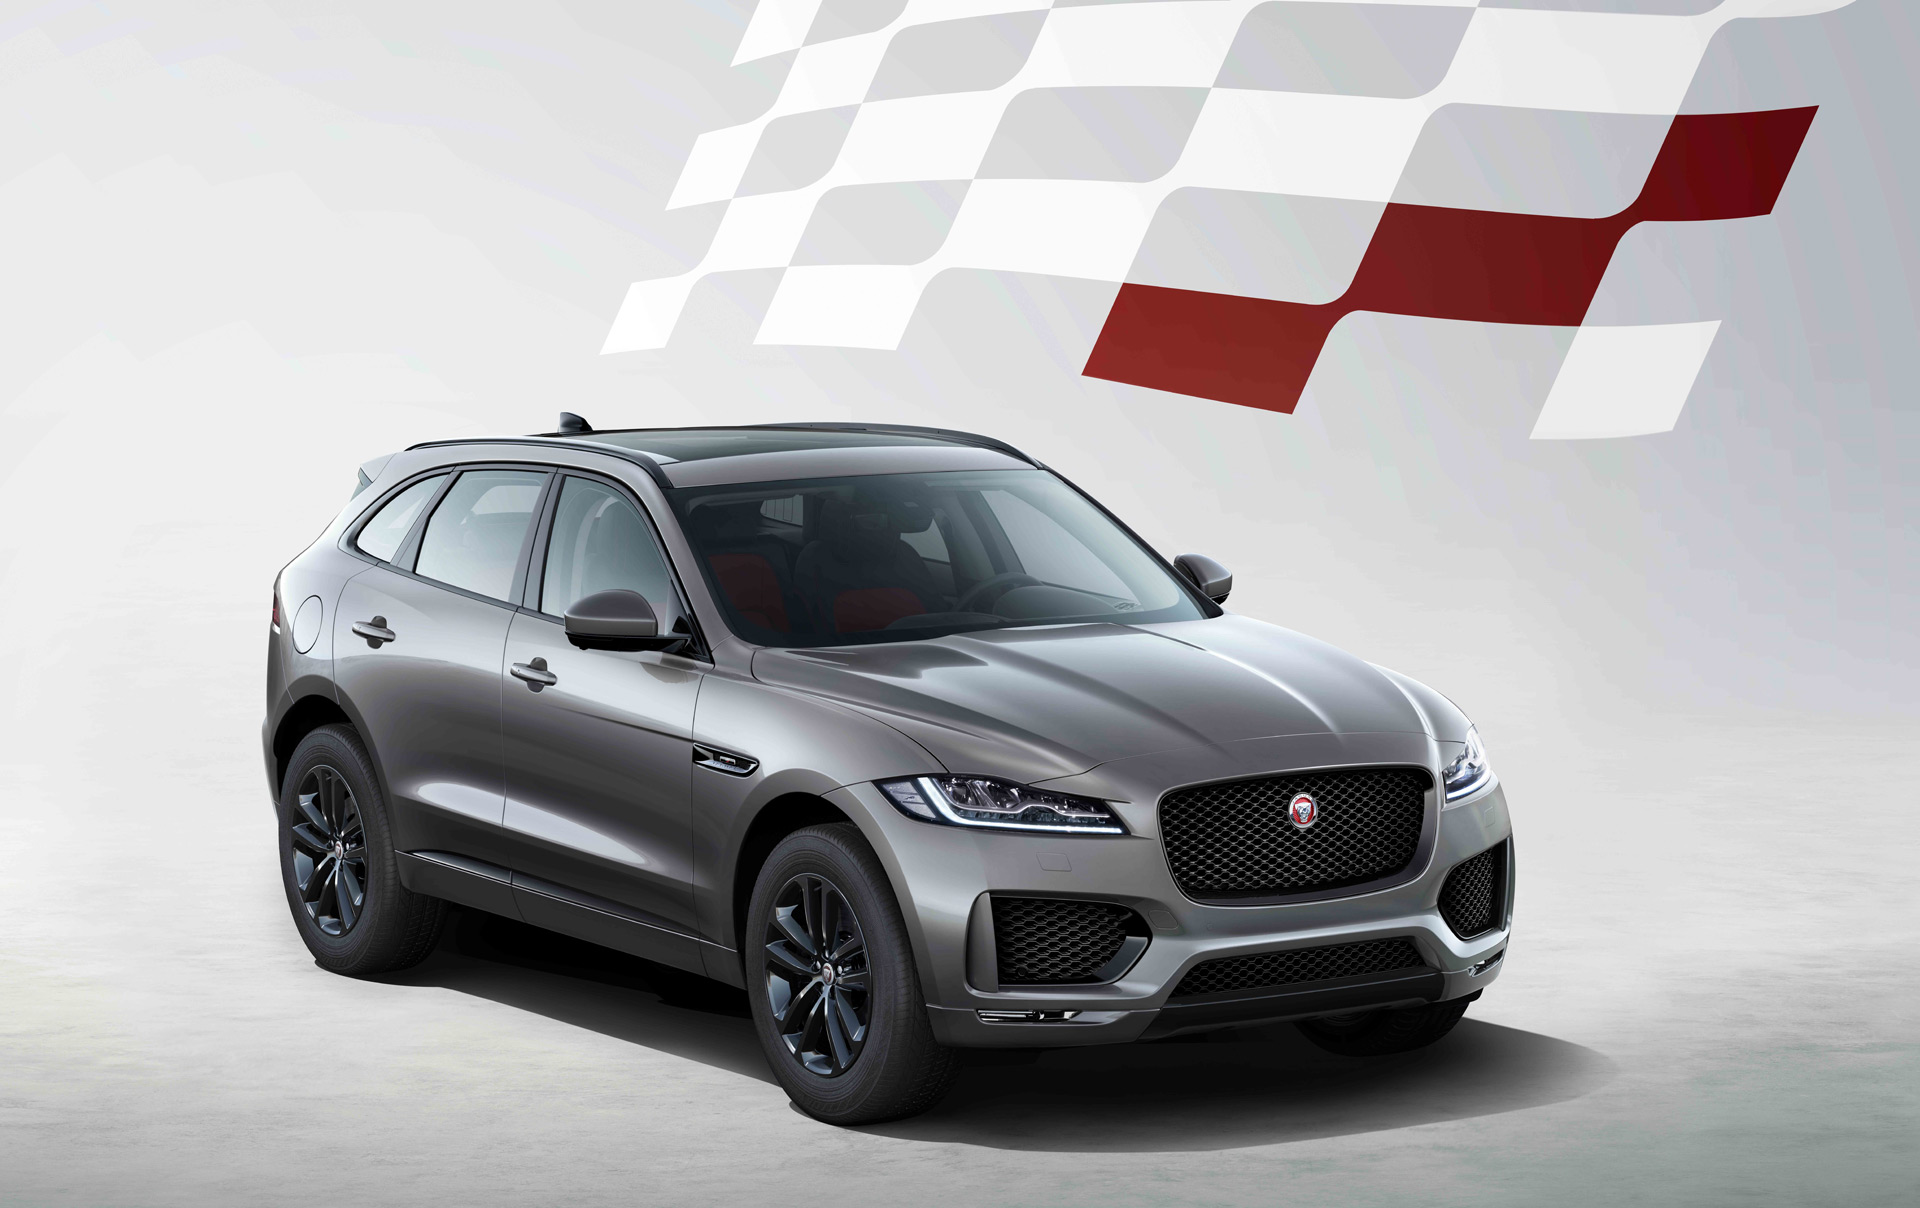 Specification, Price & Review: 2020 Jaguar F-Pace